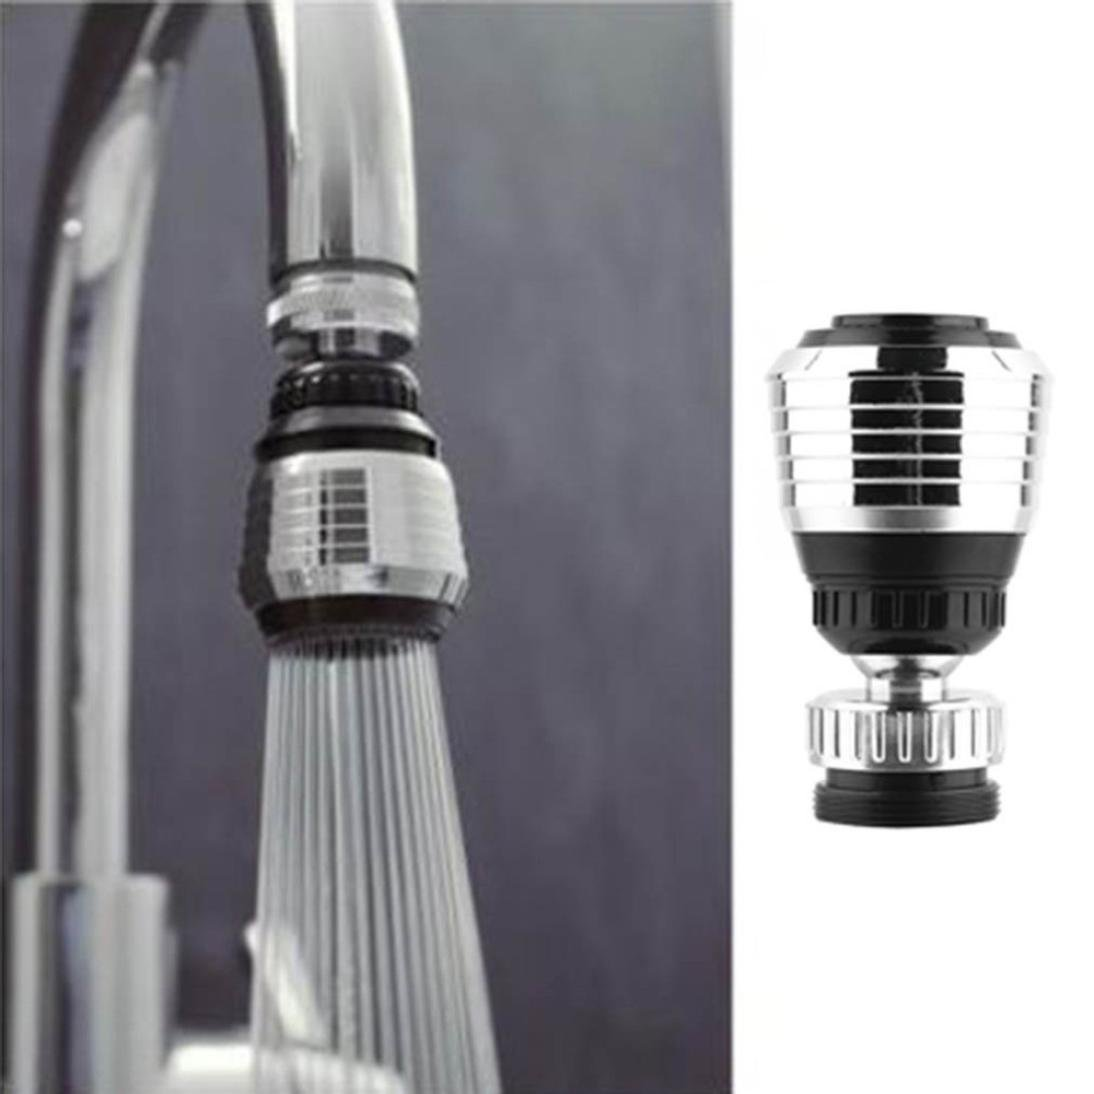 360 Rotate Nozzle Faucet XUANOU Adapter Water Purifier Saving Tap Aerator Diffuser Nozzle Filter